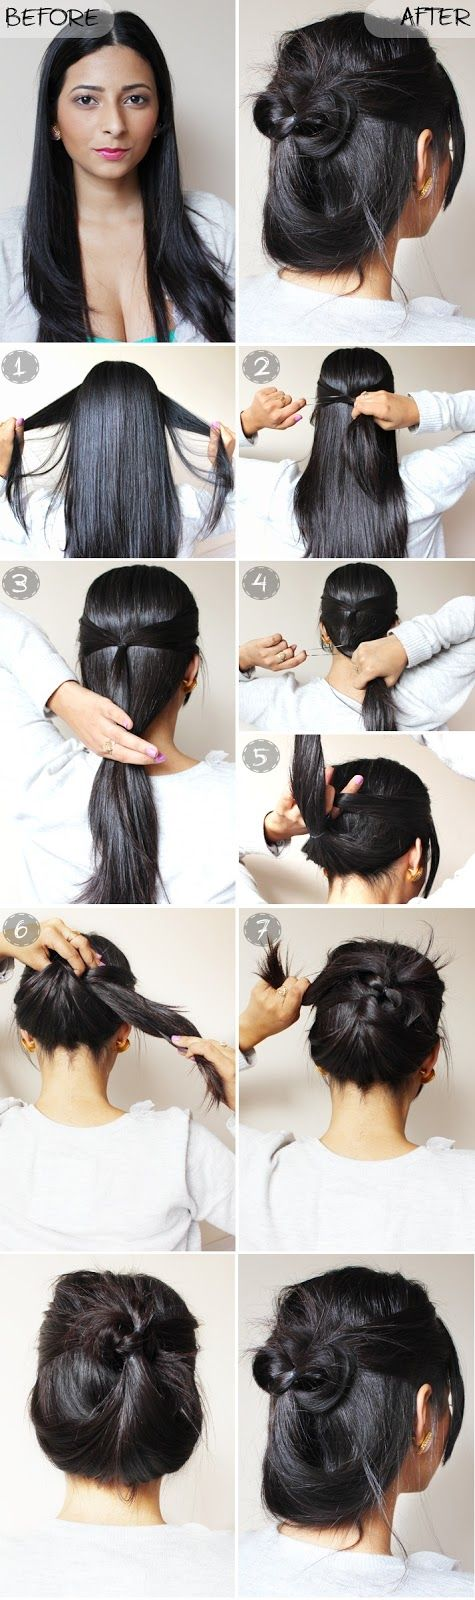 Wondrous 1000 Images About Hairstyles 1001 On Pinterest Hair Romance Short Hairstyles For Black Women Fulllsitofus